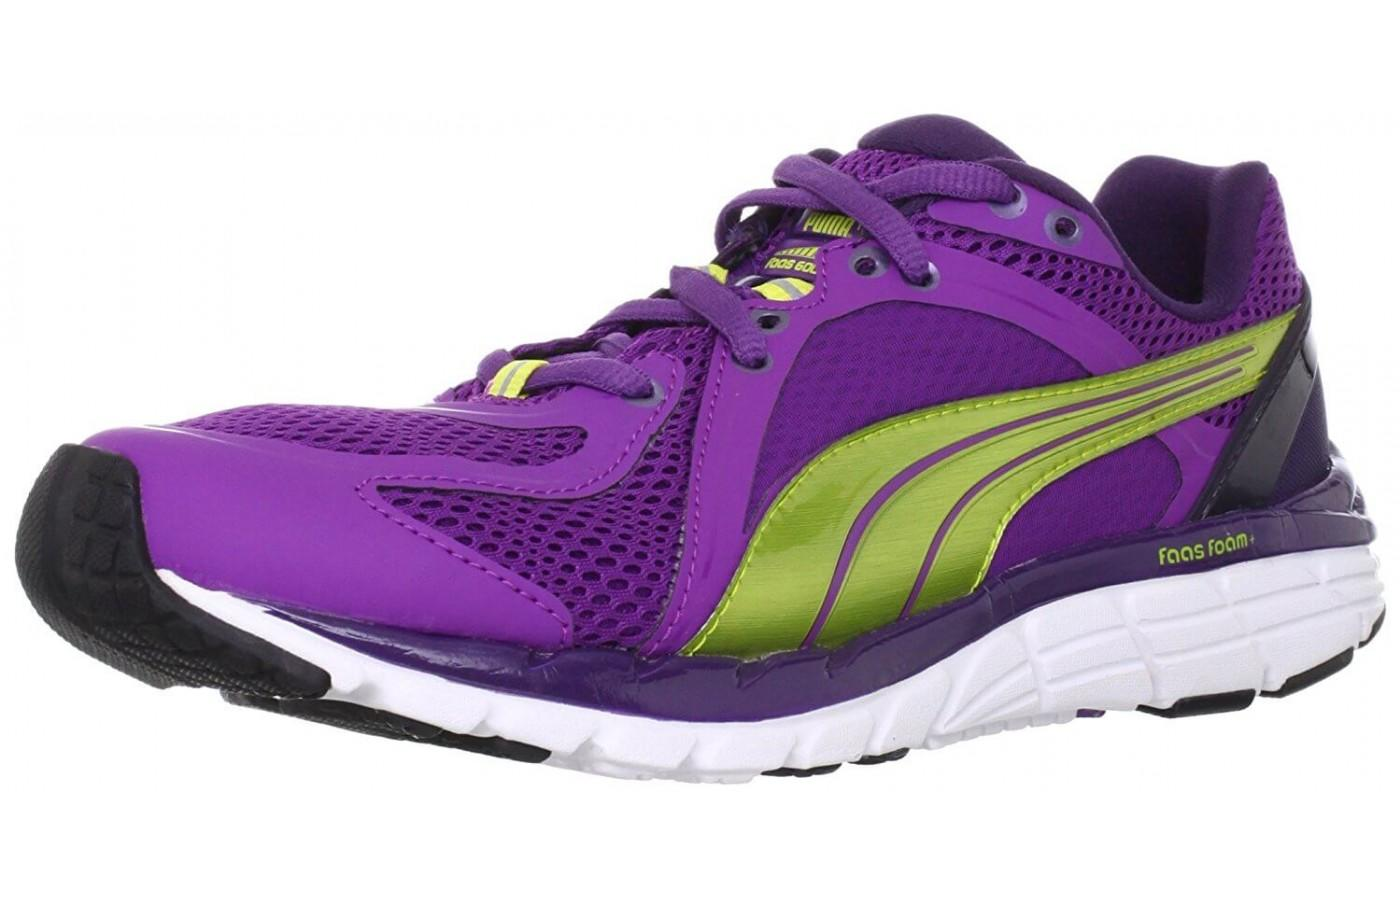 Puma Faas 600 S. The side shot of these shoes. Make all the guys take a  second look.